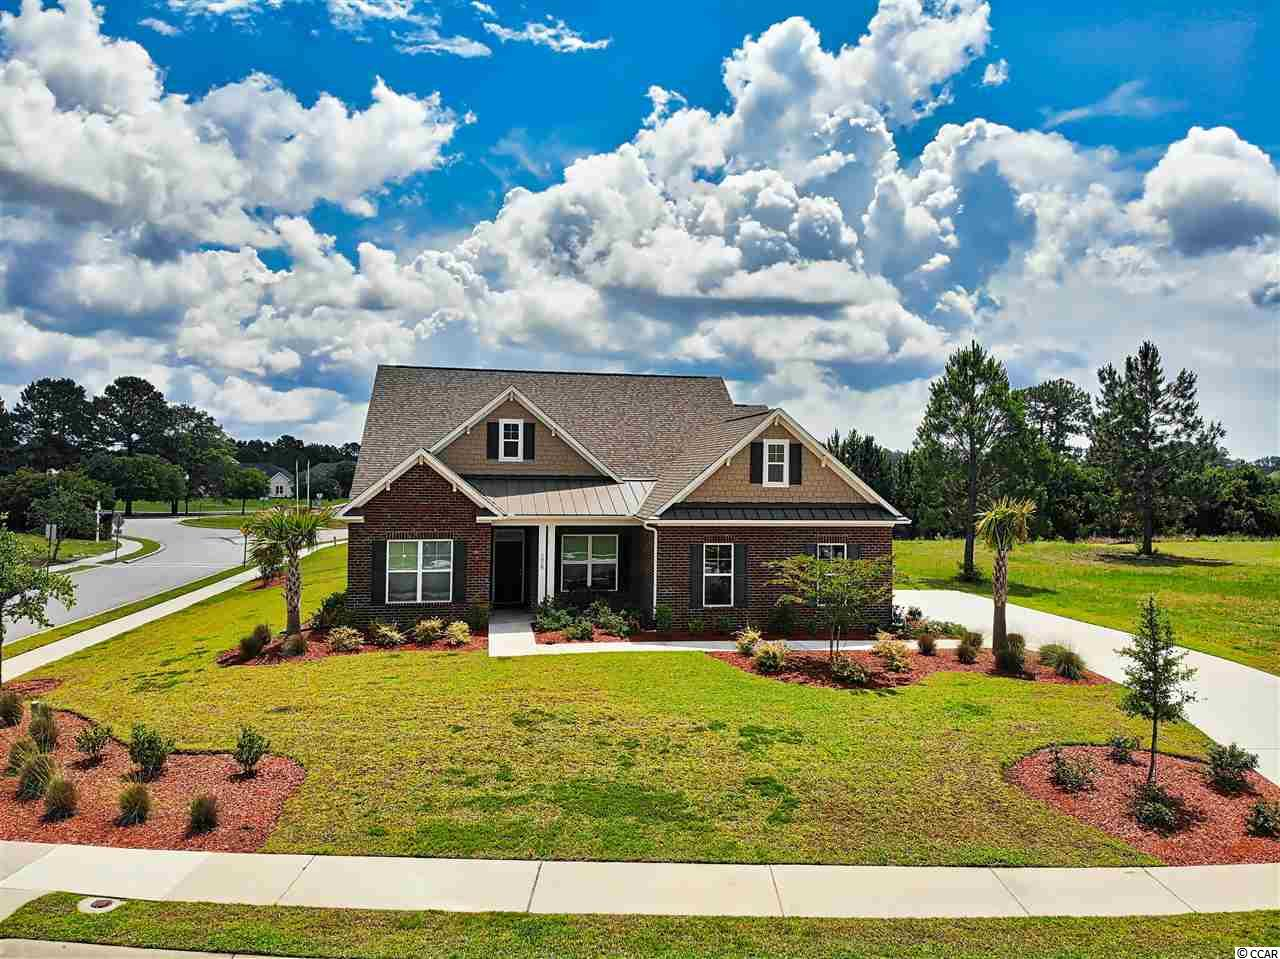 Must see this 2 year old 3br/2ba home w/ den/office/bedroom, on a corner lot in the golf course community Wild Wing Plantation! This great home w/ over 2,400 htd sqft on a half acre lot features an open floorplan with hardwood floors throughout. Large formal dining room for family get- togethers has coffered ceiling. Gourmet kitchen w/ stainless appliances & granite countertops, double wall oven, tilebacksplash, breakfast bar, breakfast nook, work island, and pantry. The family room/greatroom has cathedral ceilings with a wood beam and a gas fireplace with buildt-ins on either side. It also boasts a master suite w/ tray ceiling & large walk-incloset. There is a large utility room, separate den/office, screened porch and side load garage with pull down stairs to attic! On topof this fantastic newly built home, Wild Wing Plantation is a Natural Gas Community featuring great amenities including 180 acres of lakes, a golf course, driving range, clubhouse w/ fitness center, 3 awesome pools, a water slide and kids area, basketball &tennis courts, day docks, a boardwalk and is conveniently located close to the schools, CCU, Conway Hospital, downtown Conway, and just a short drive to a MB Airport & all of the shopping, dining, entertainment, golf, area attractions, the beautiful Atlantic Ocean w/ 60 miles of white sandy beaches and all the beach has to offer yet is out of the busy hustle & bustle of the Grand Strand!Don''t Miss ~ Come Live the Dream!